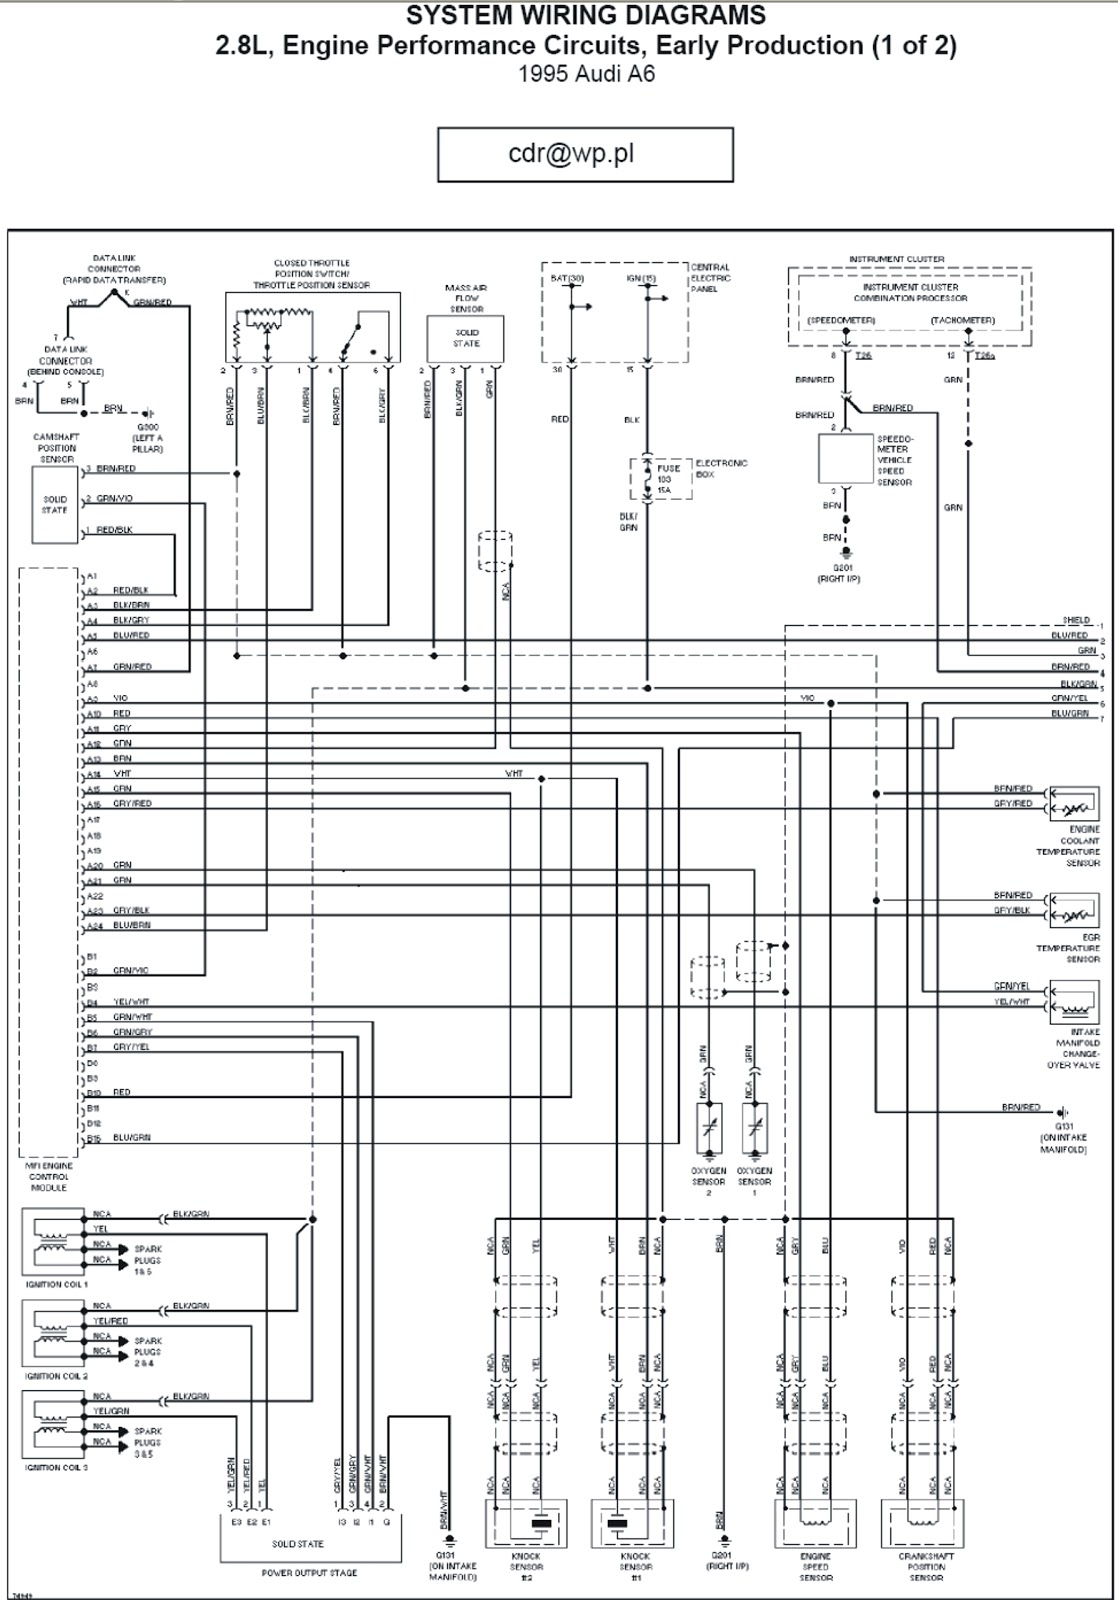 96 Audi A4 Wiring Harness Diagram Just Another Blog 2011 Mustang Engine Wire Simple Diagrams Rh 7 11 2 Zahnaerztin Carstens De 2004 1999